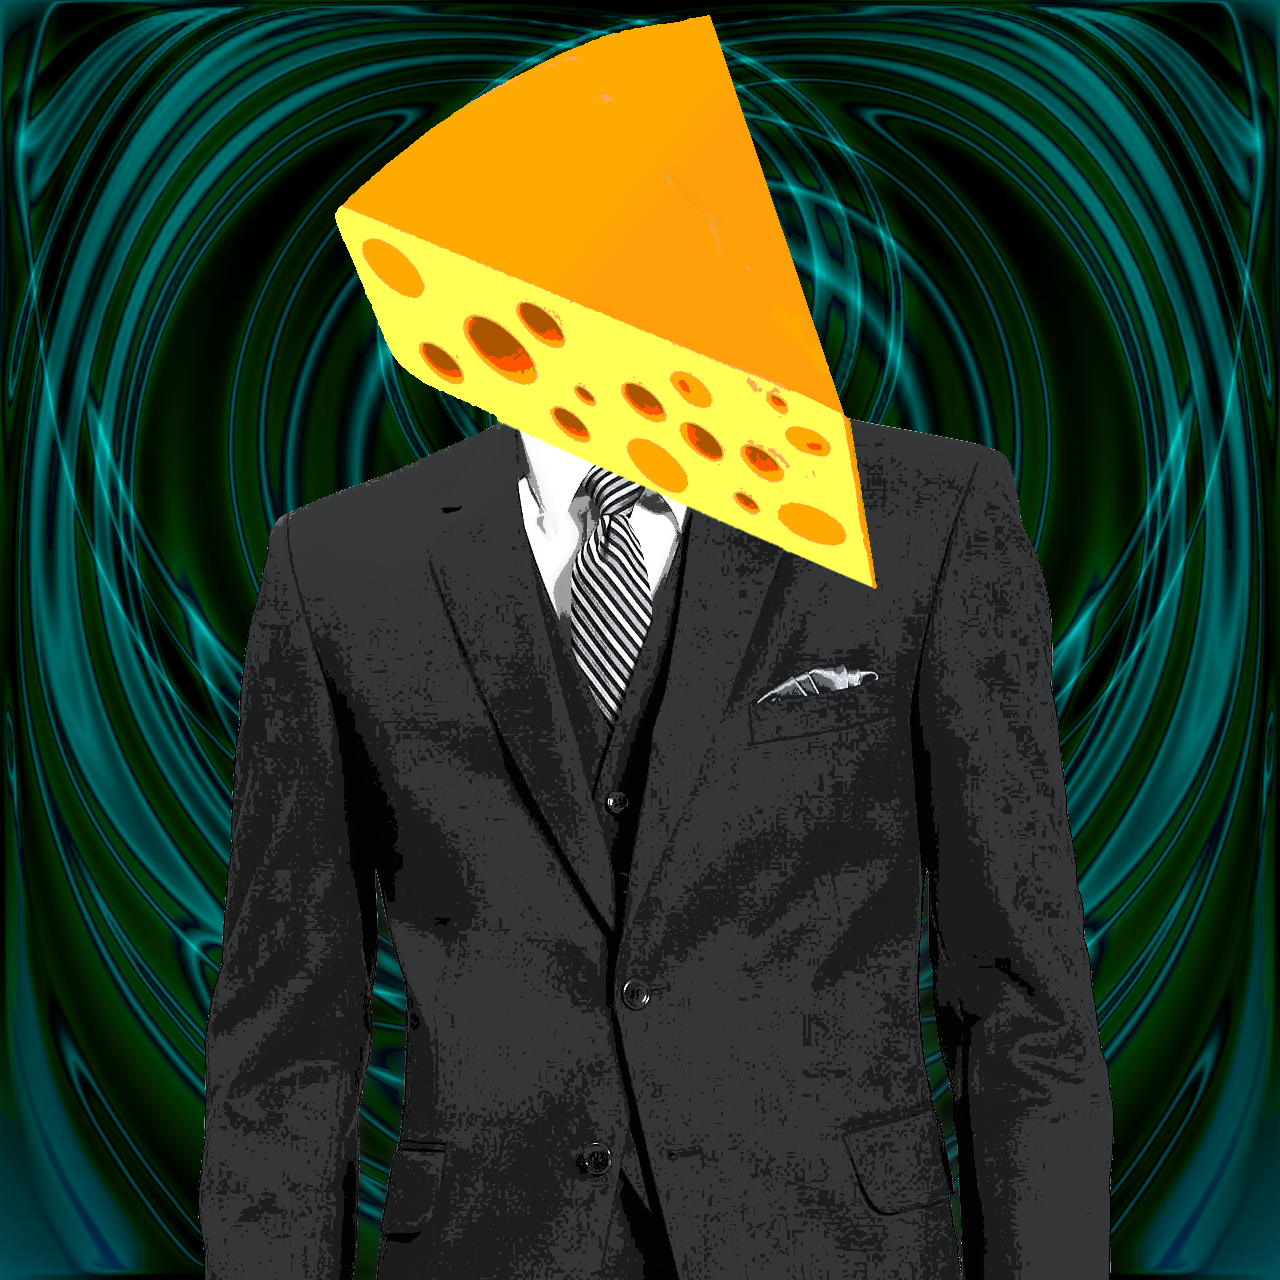 AGENT CHEESE